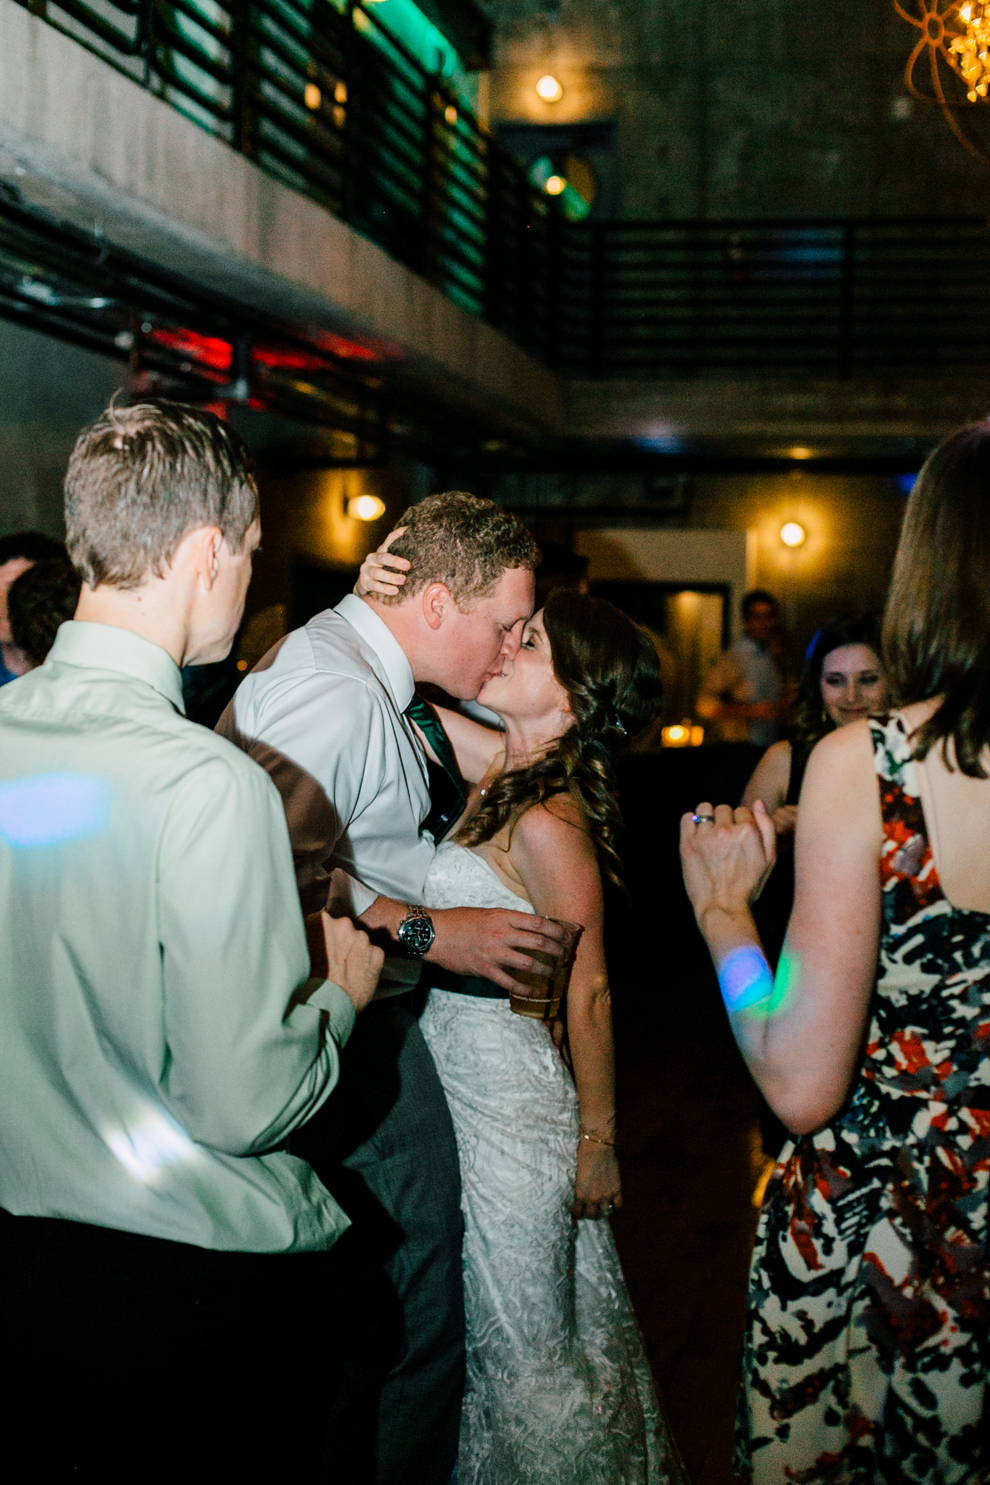 093-fremont-foundry-seattle-wedding-katheryn-moran-photography-anthony-kaitlin.jpg